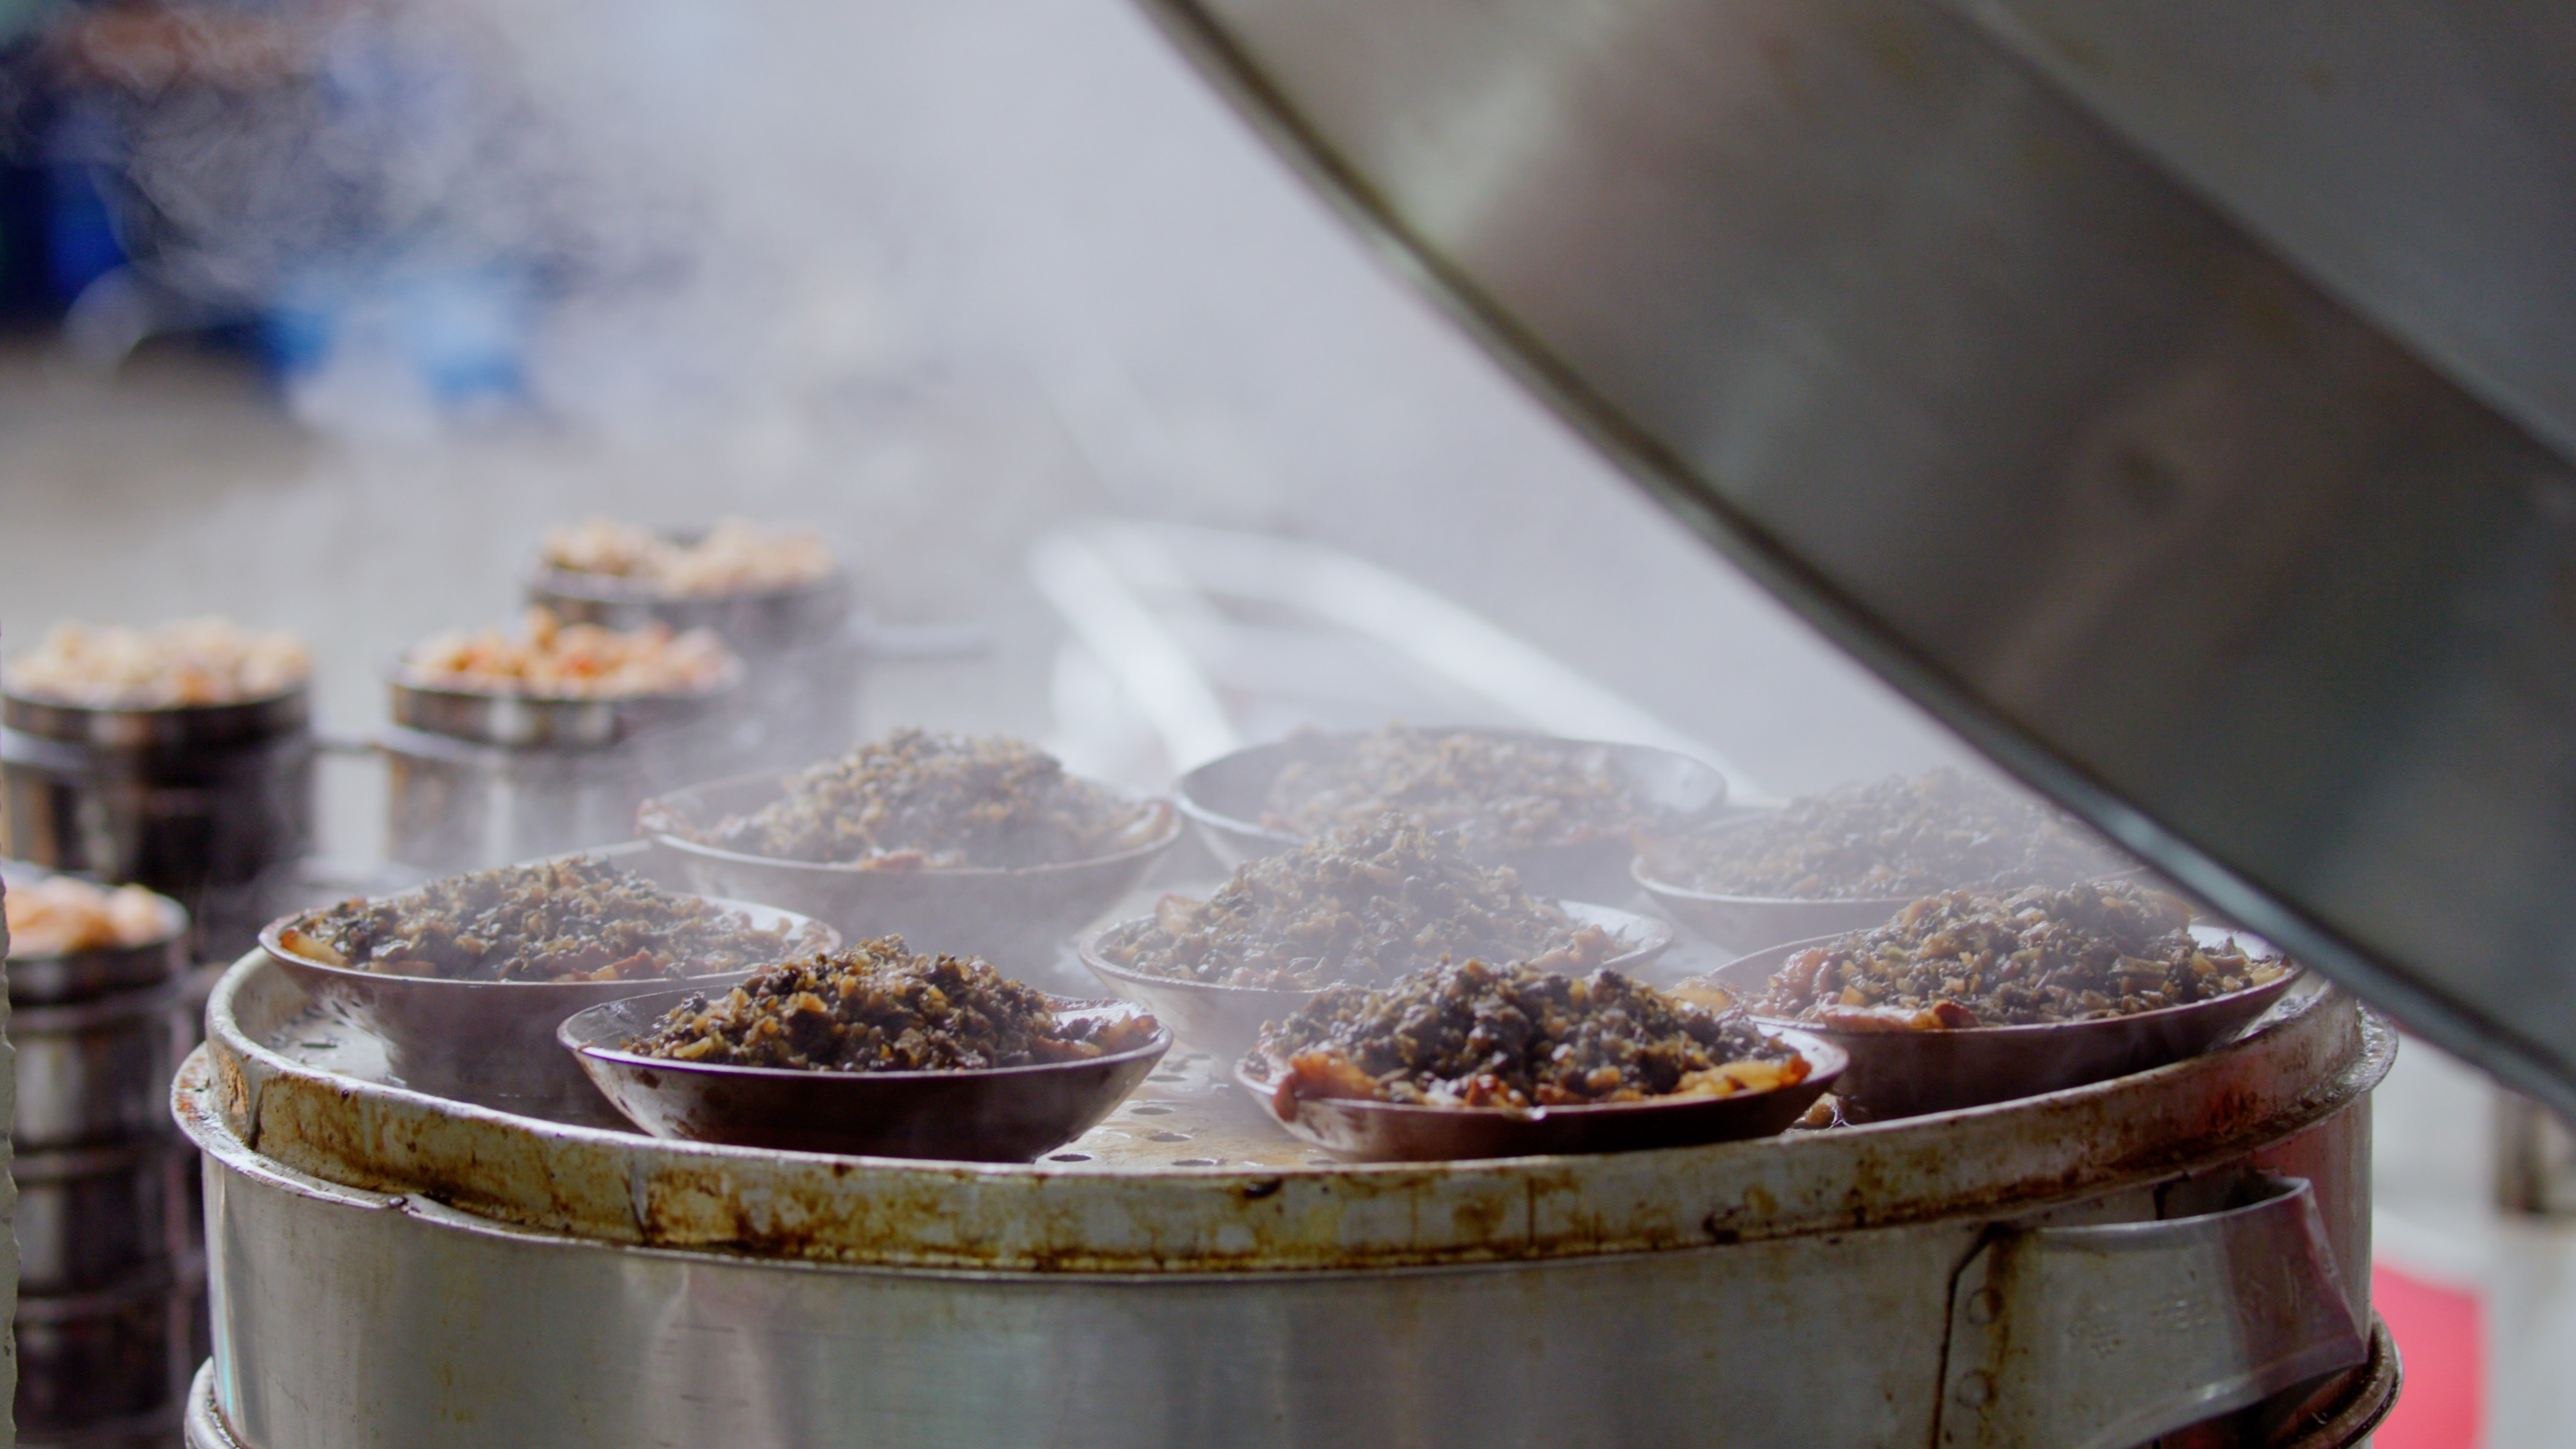 In this still taken from Season 2 of the series Once Upon a Bite, which debuted on Apr. 26, 2020, dishes of braised pork rice from Sichuan, China are being steamed.